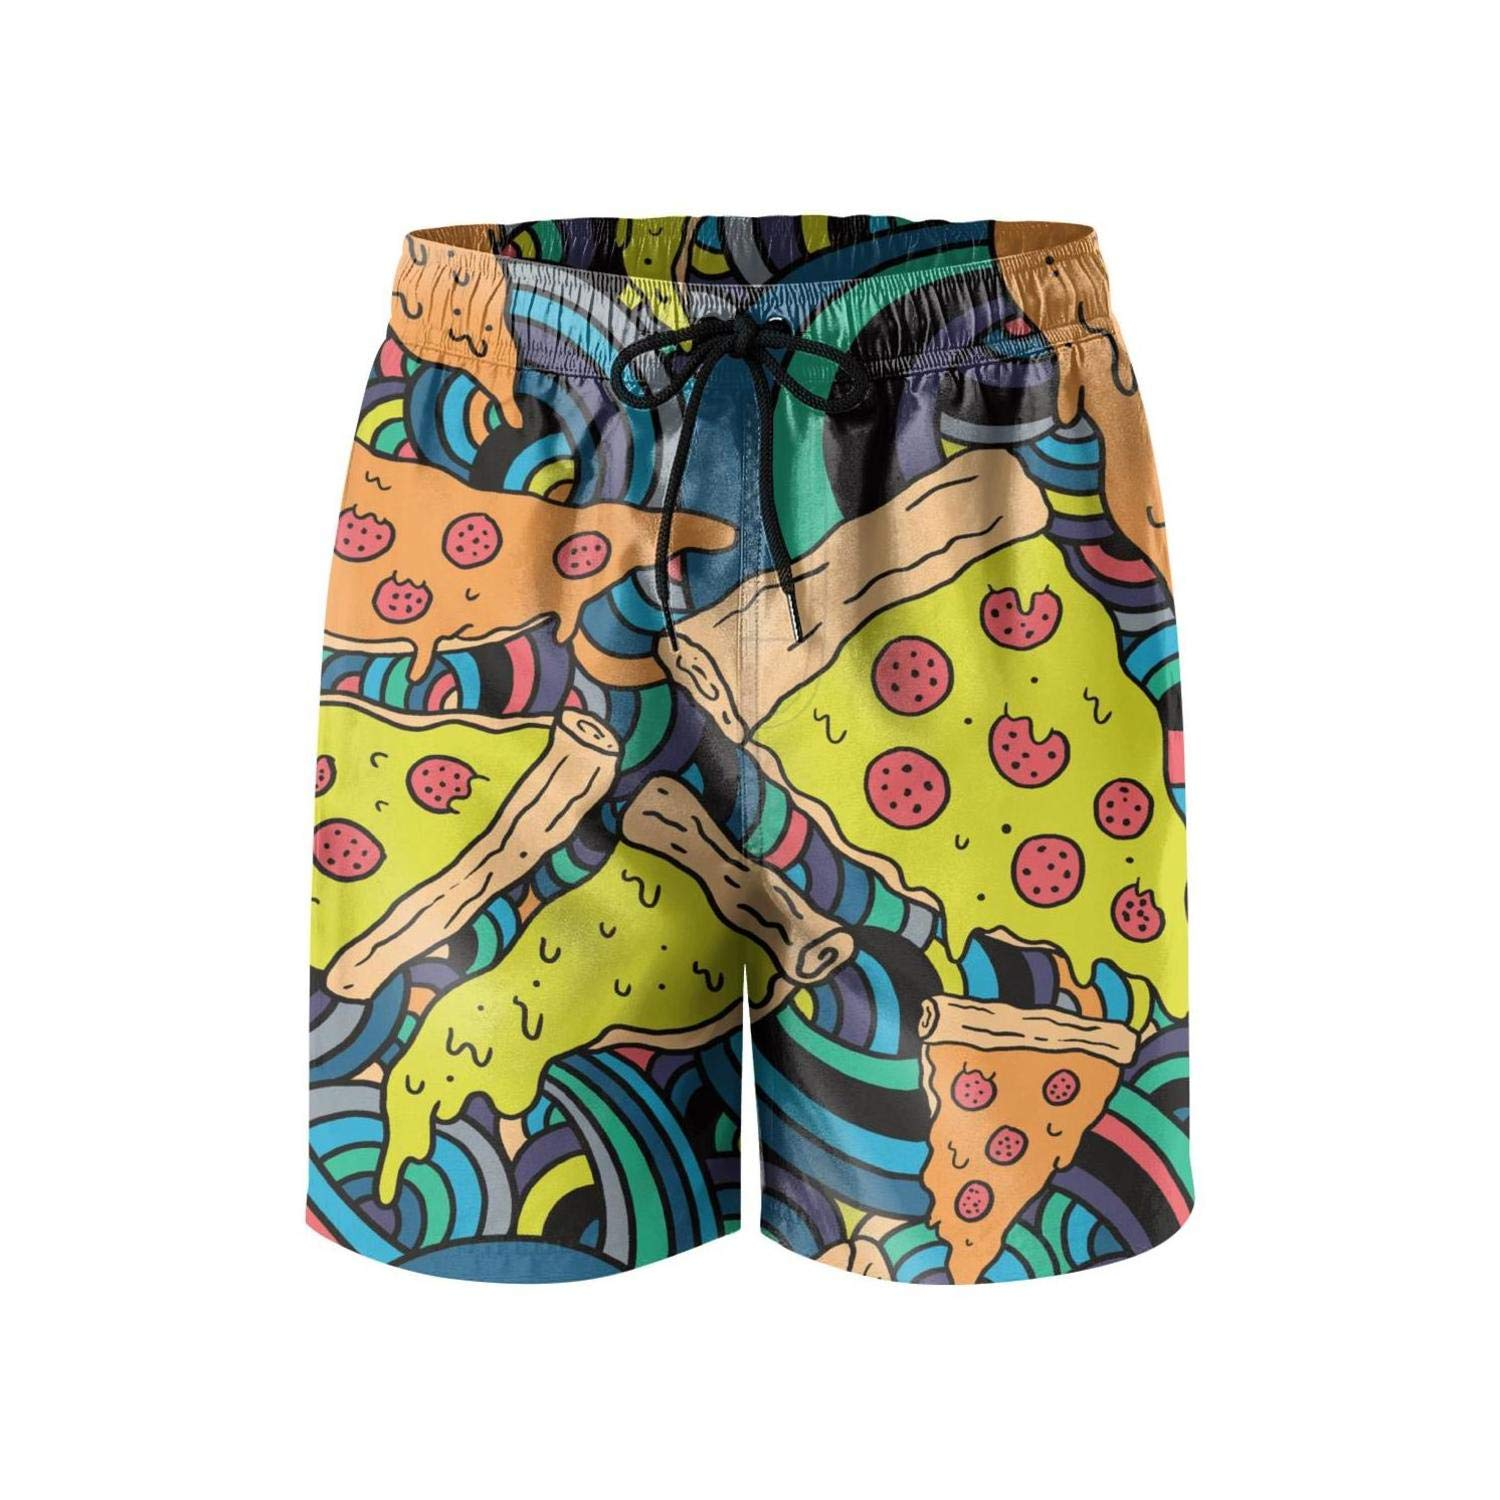 Wild Quick Dry Fully Lined Pants Mesh Lining Pink Pizza Wave Swim Shorts